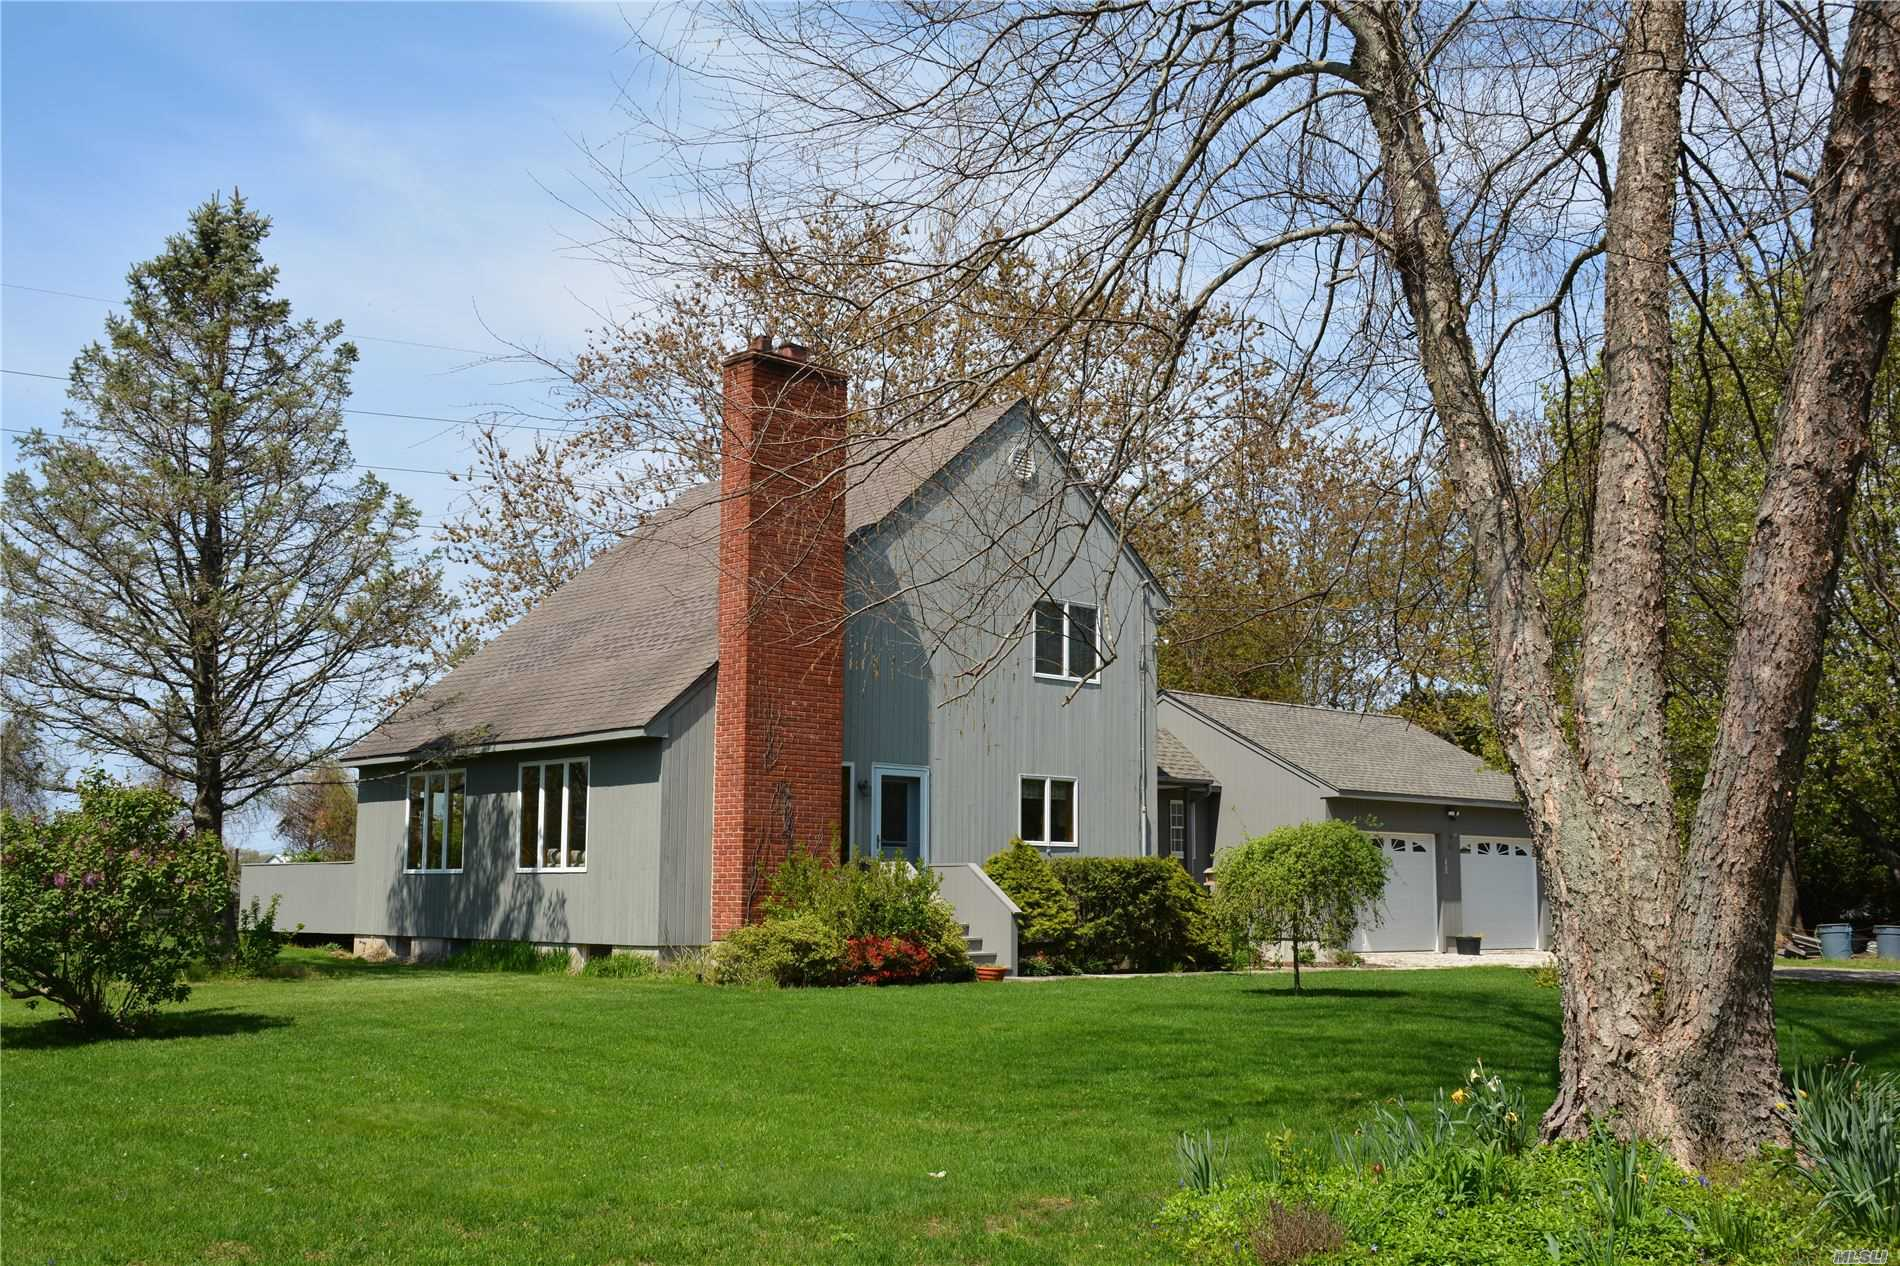 Wine Country Secluded Saltbox on 1.7 acres of private green lawns and pasture surrounded by preserved farmland. Enjoy this open floor plan with great room, fireplace, and fantastic 3 season sunroom.Three Bedrooms & 1.5 baths. Room for horses, goats, chickens, or pool and tennis court. Hardwood floors, attached 2 car garage and privacy abound here on this flaglot setting on the beautiful North Fork.